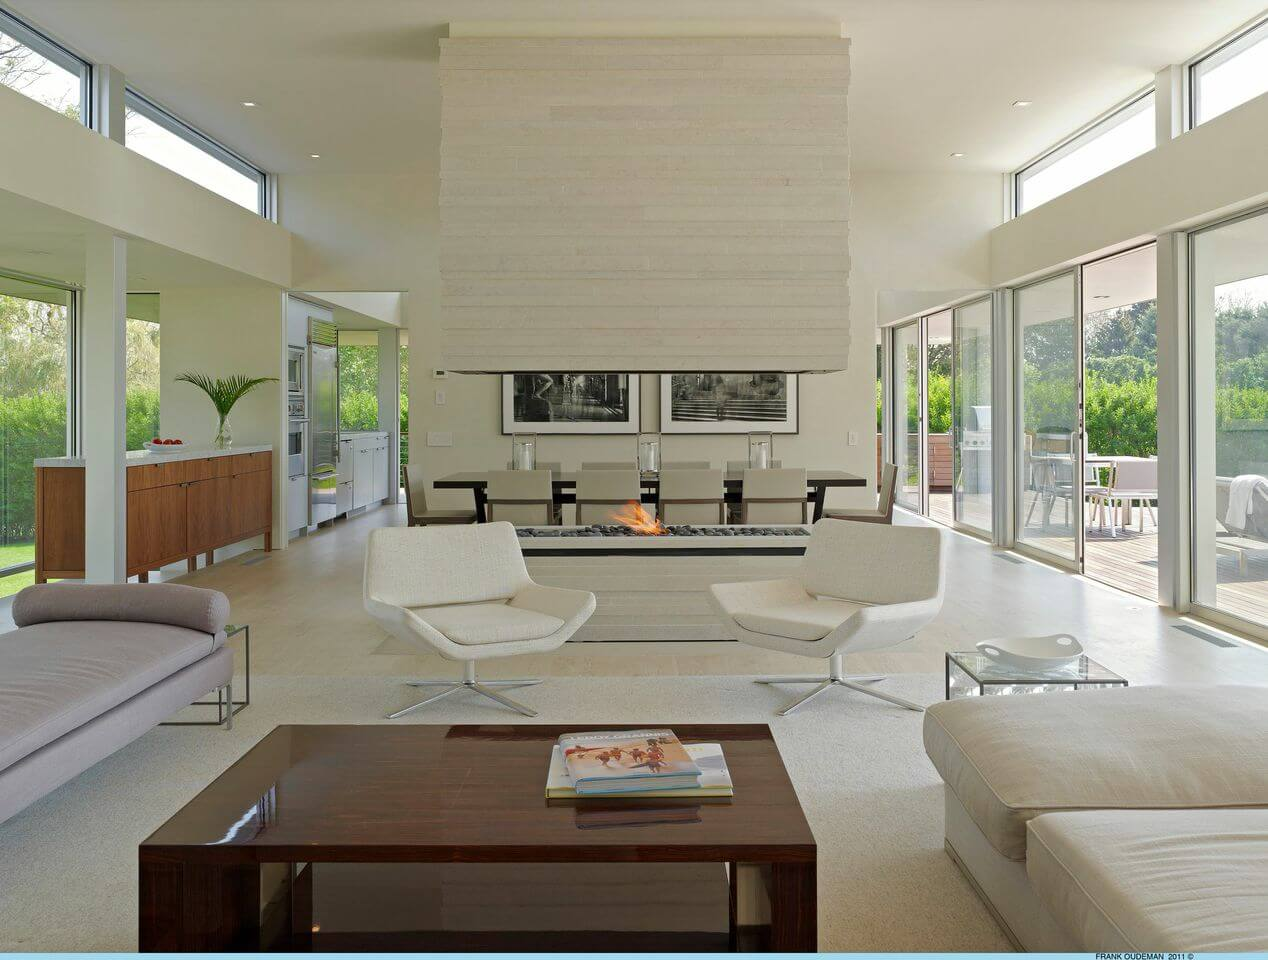 The modern-style living room is in a pristine white. The open-concept space is visually separated by a open-flame fireplace between the living room and dining room. Through the two archways behind the dining room is the kitchen.